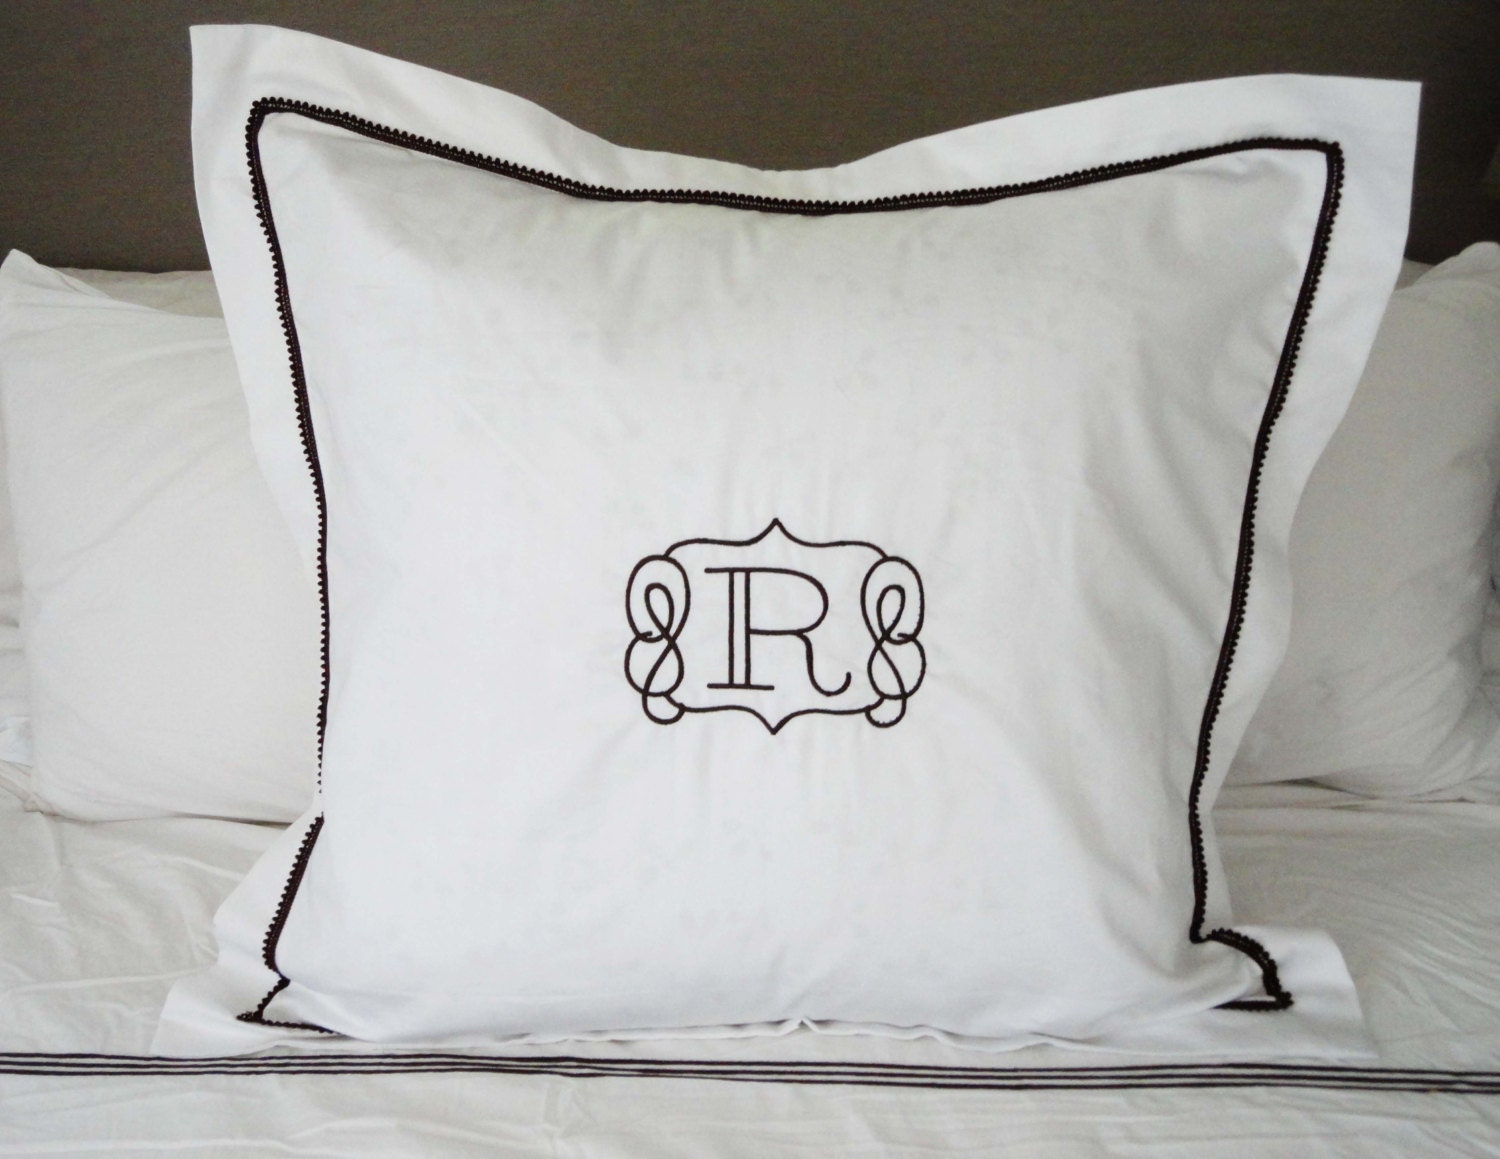 monogram euro pillow sham with mini pom pom trim monogram. Black Bedroom Furniture Sets. Home Design Ideas